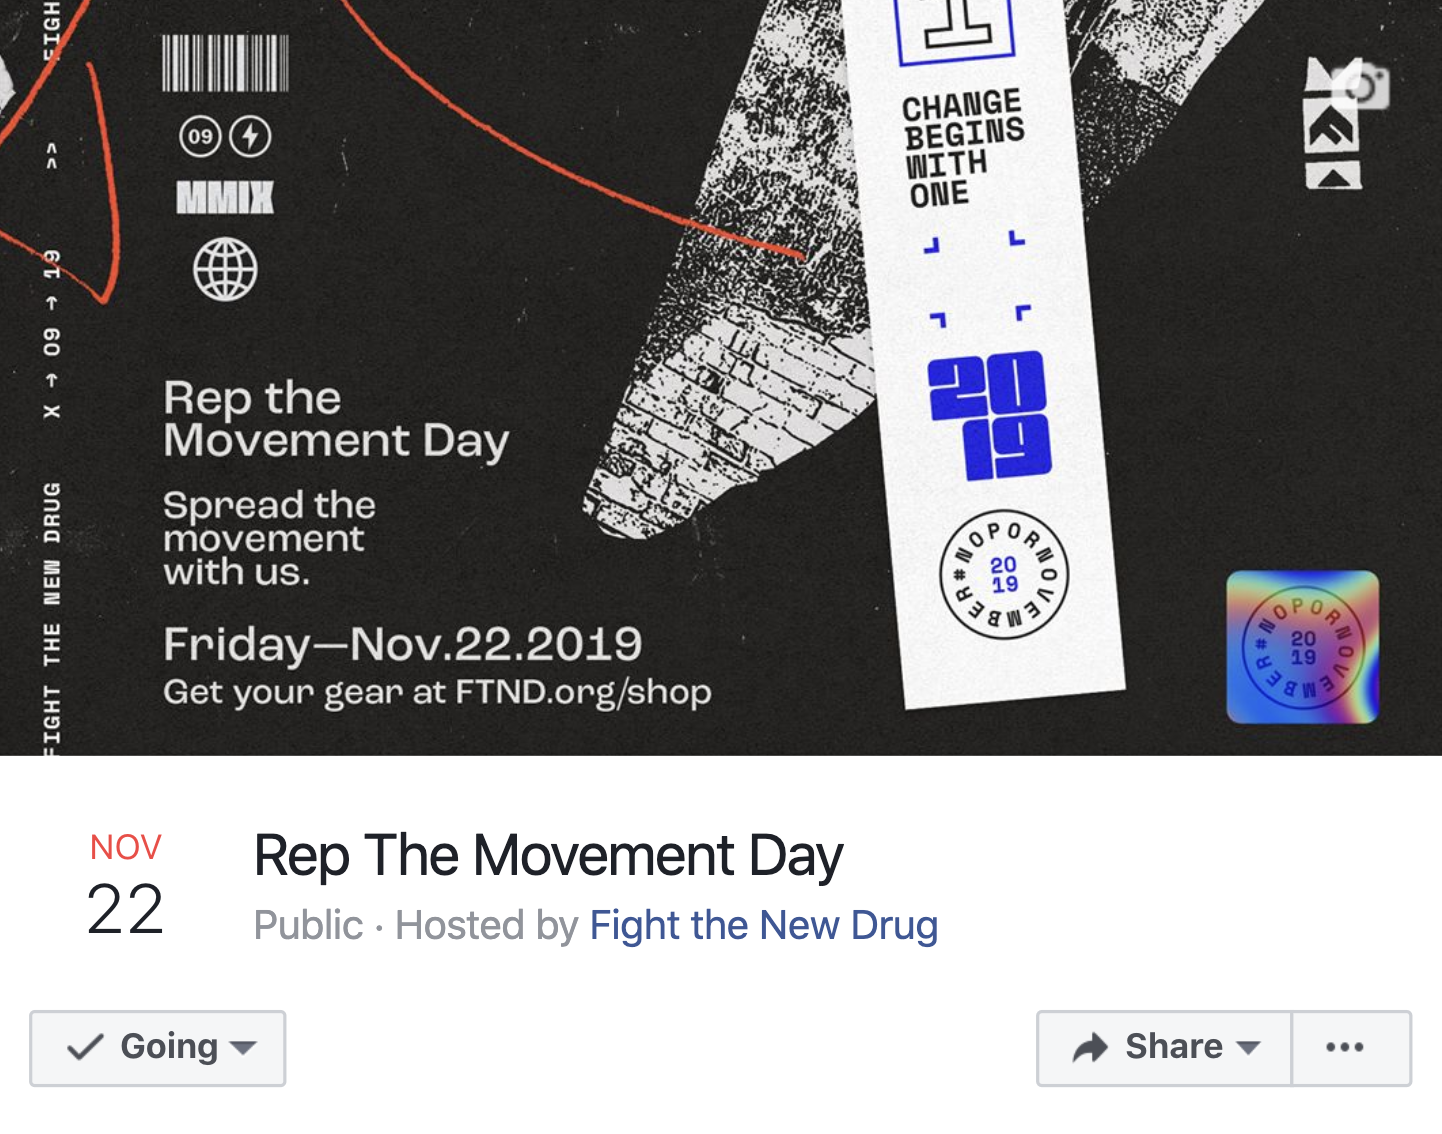 rep-the-movement-day-2019